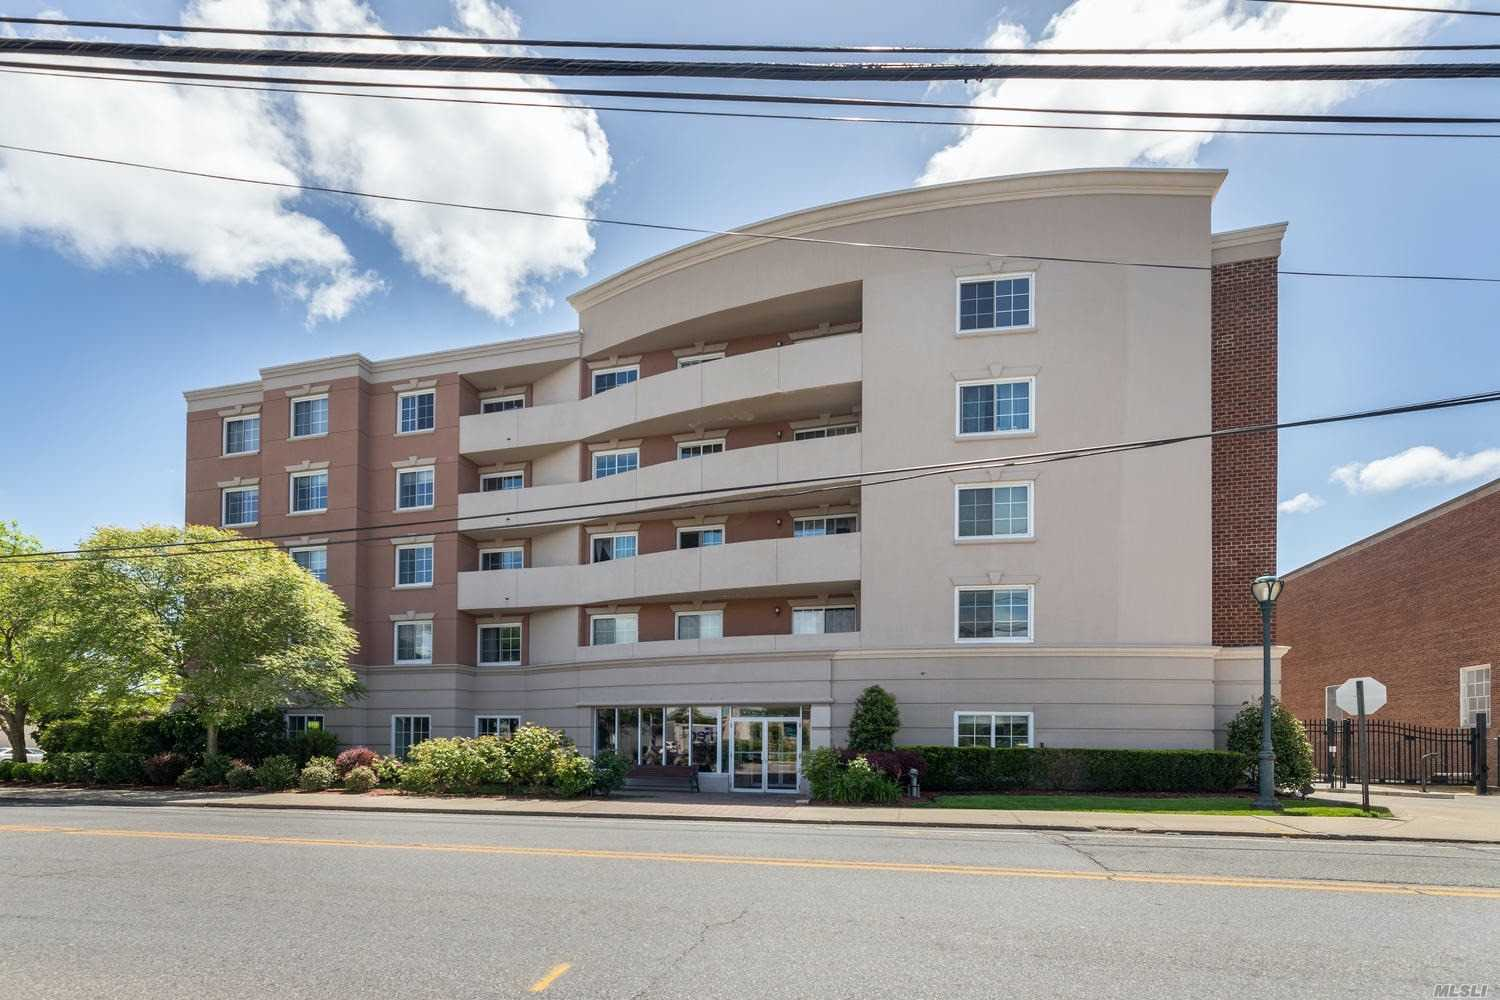 Property for sale at 242 Maple Ave Unit: 319, Westbury,  New York 11590